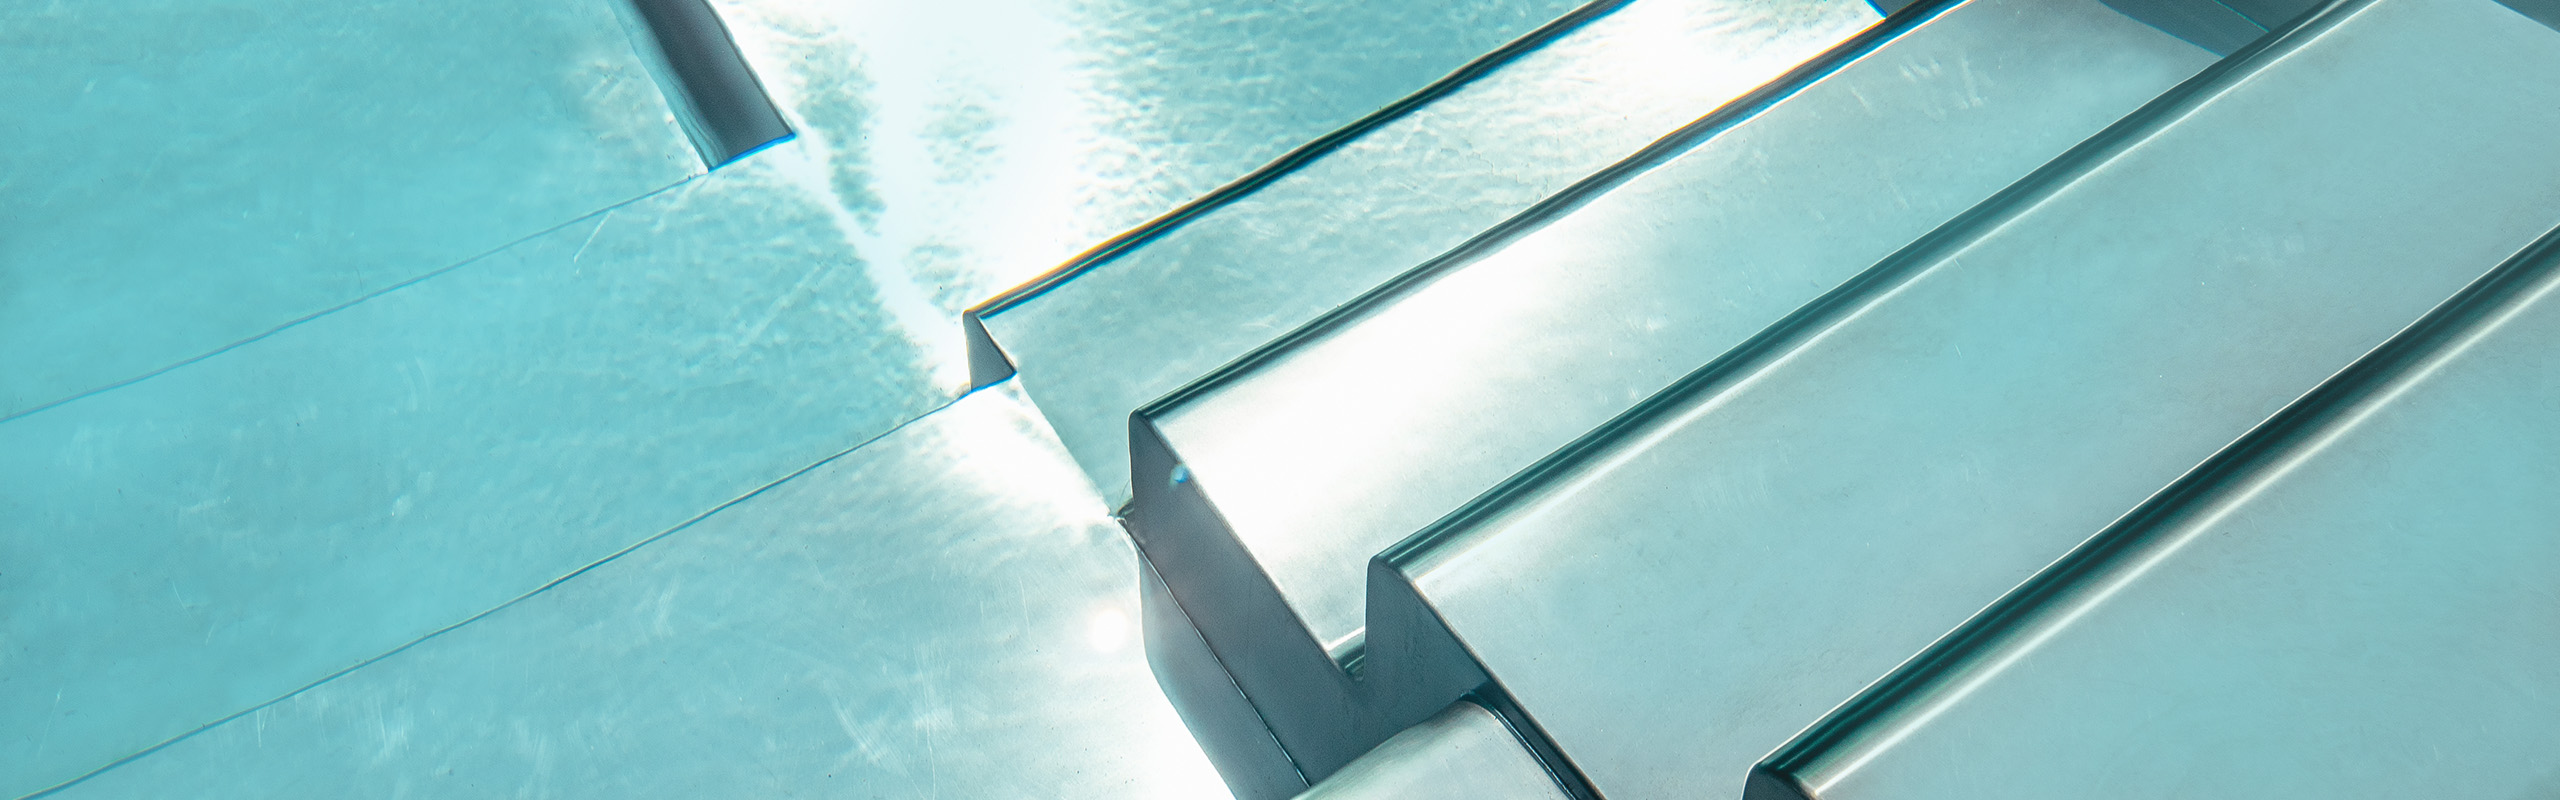 Piscine En Inox Steel And Style why choose a stainless steel pool? | aesthetics, hygiene and